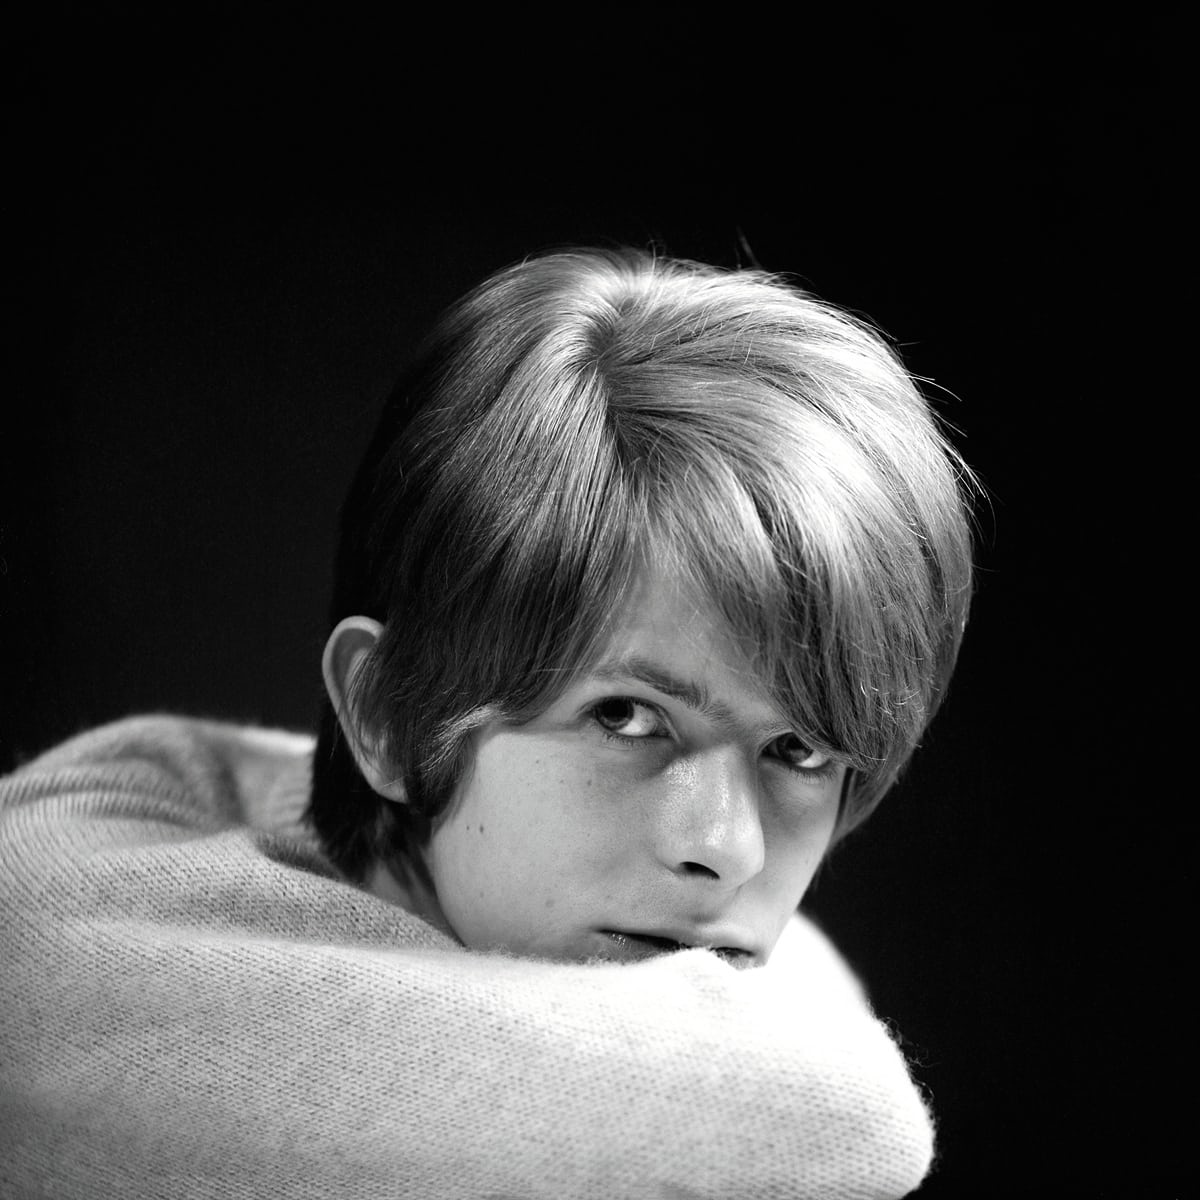 Unseen David Bowie's Photoshoot in 1967